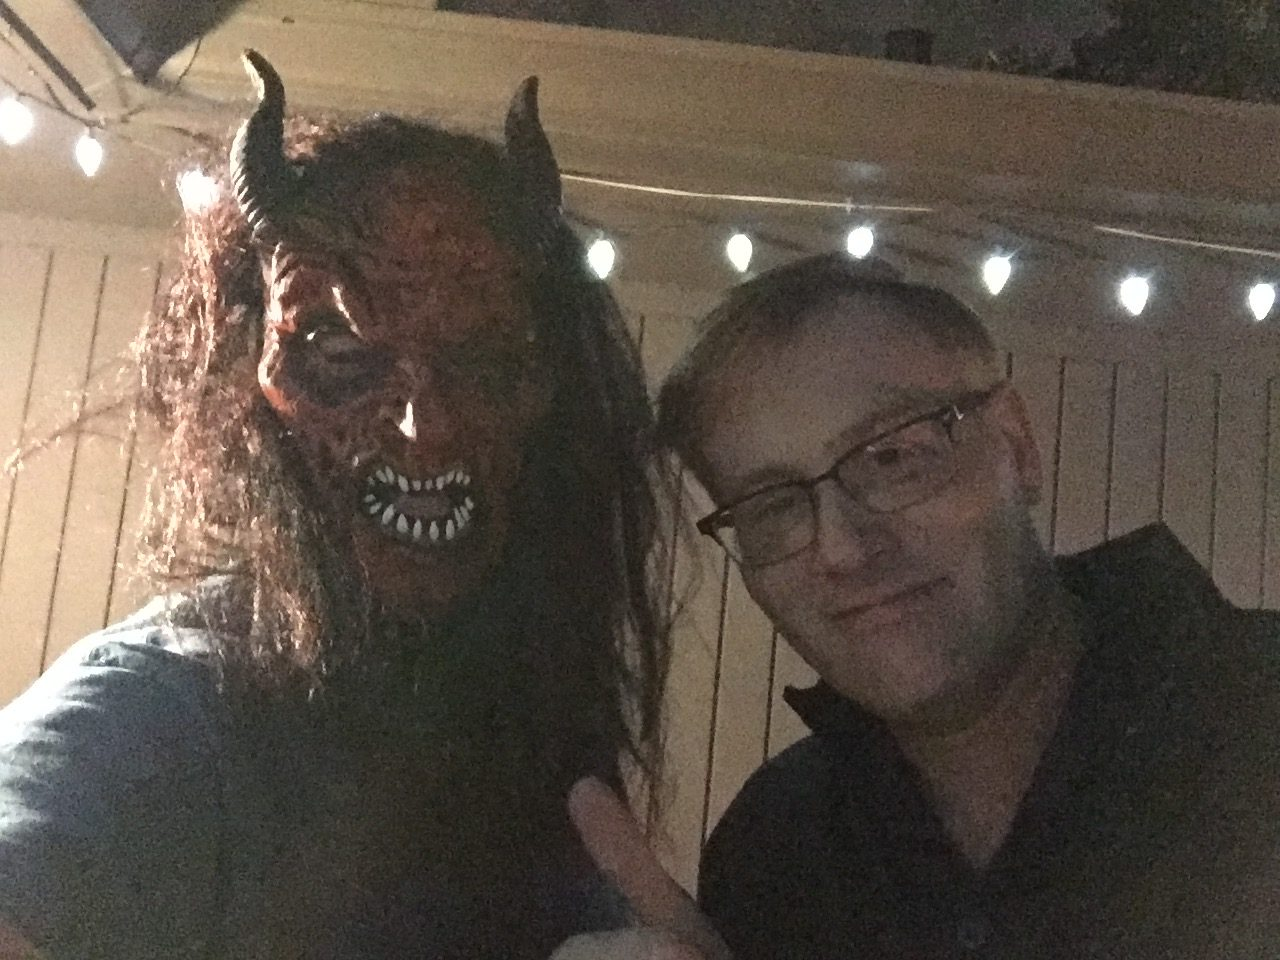 Scarydad (left) and Chris Jordan (Right) sit down to discuss Krampus.